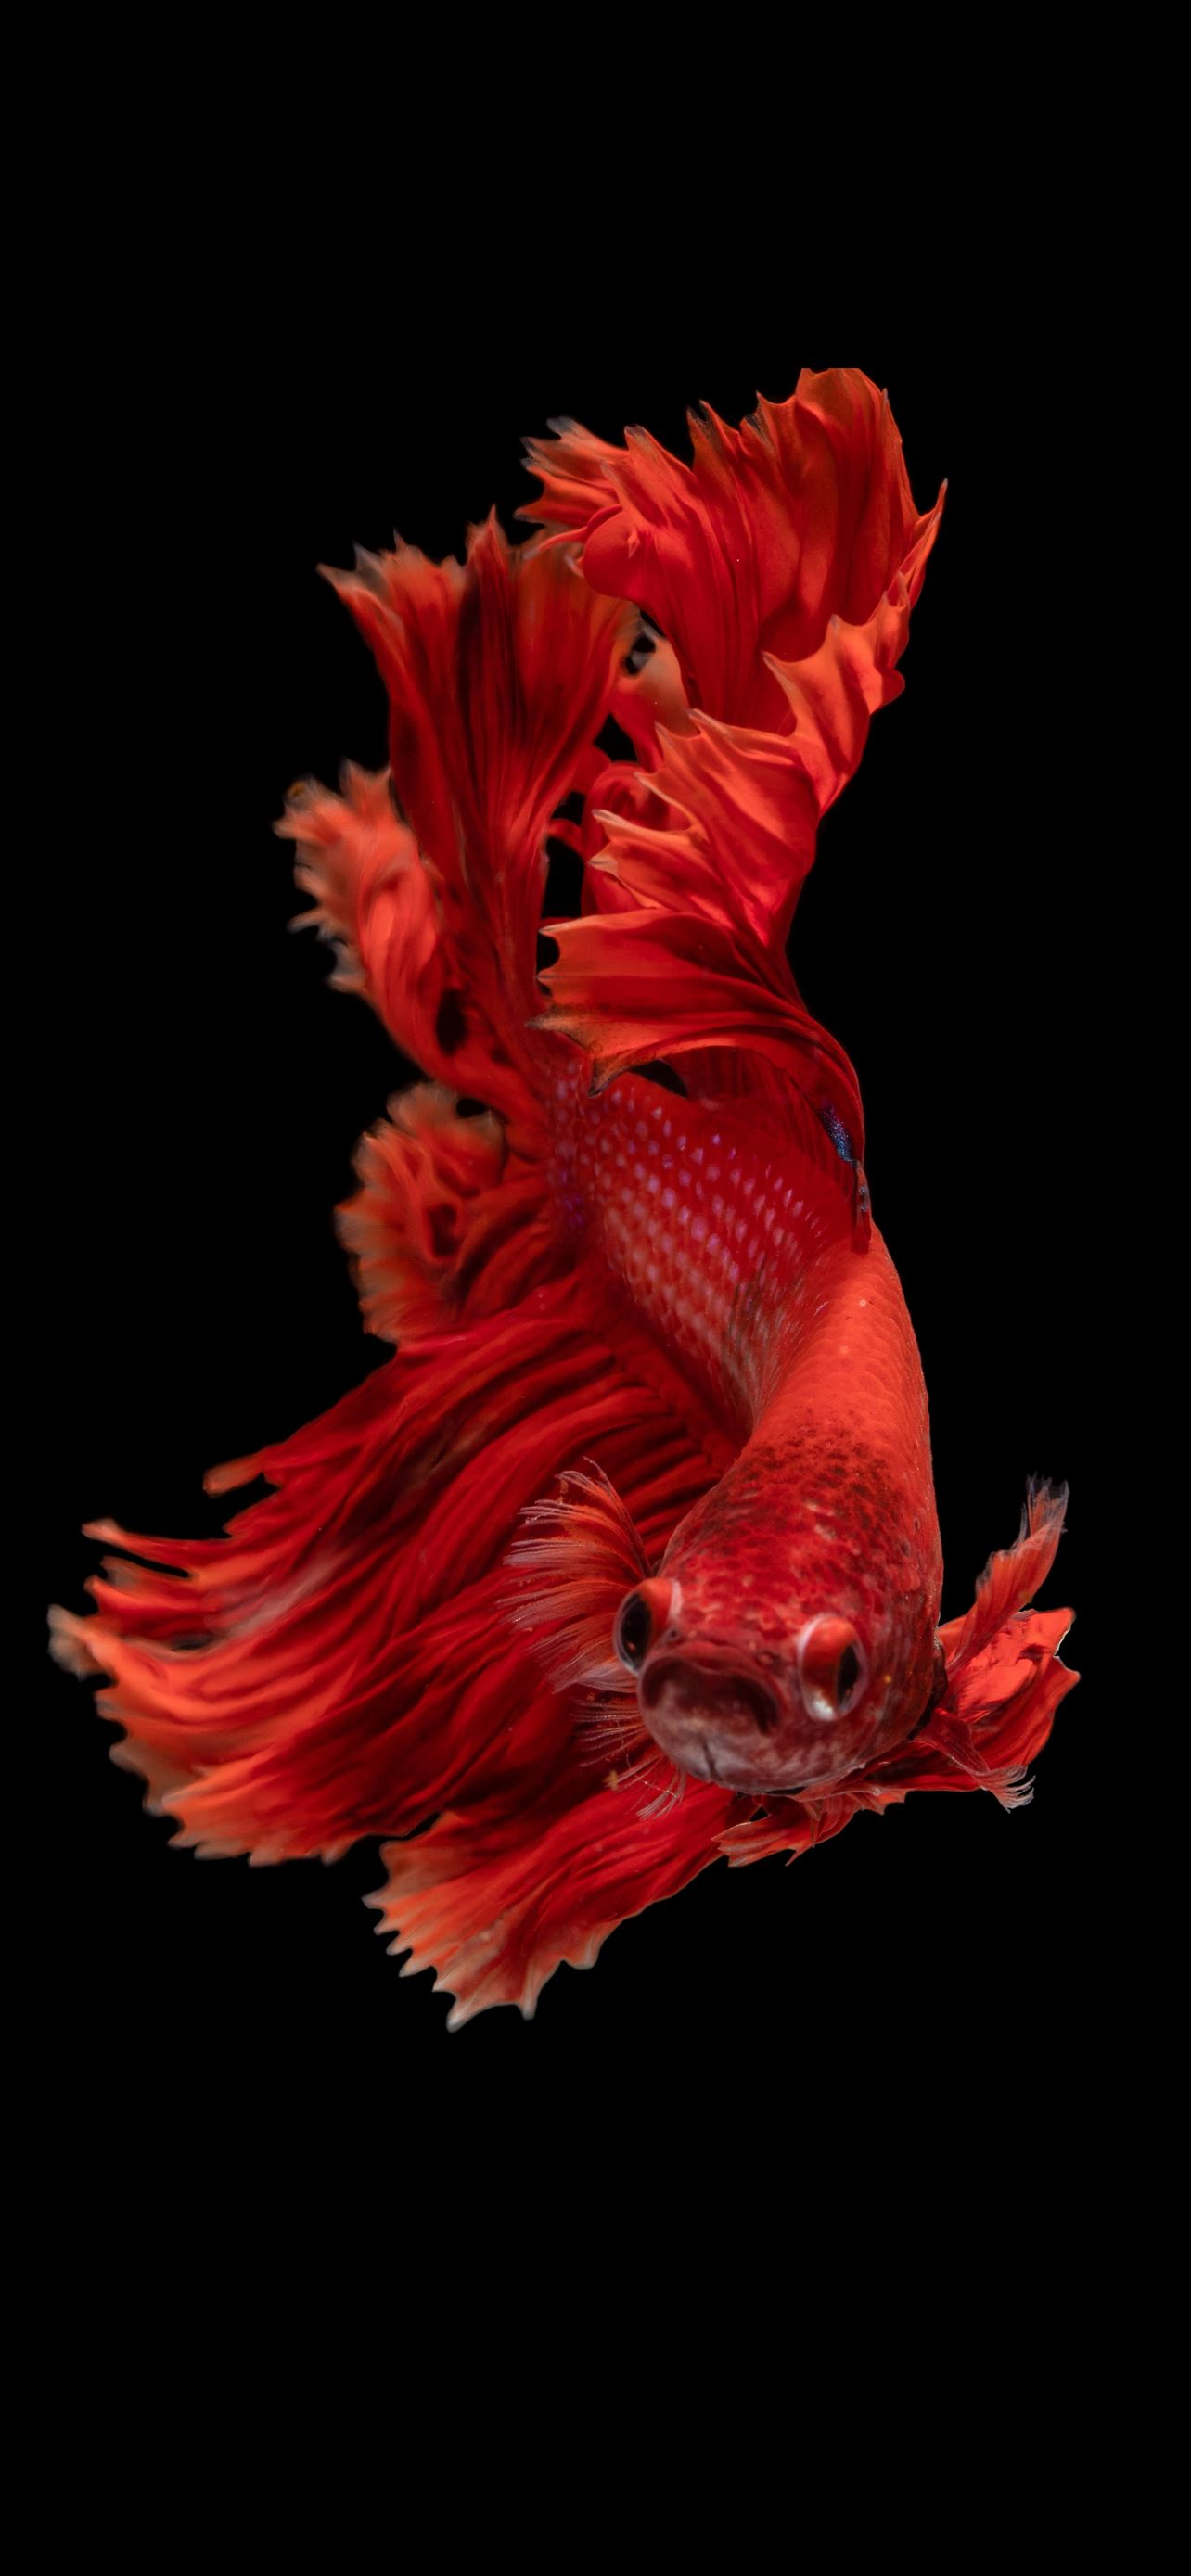 red Siamese fighting fish iPhone 12 Wallpapers Free Download